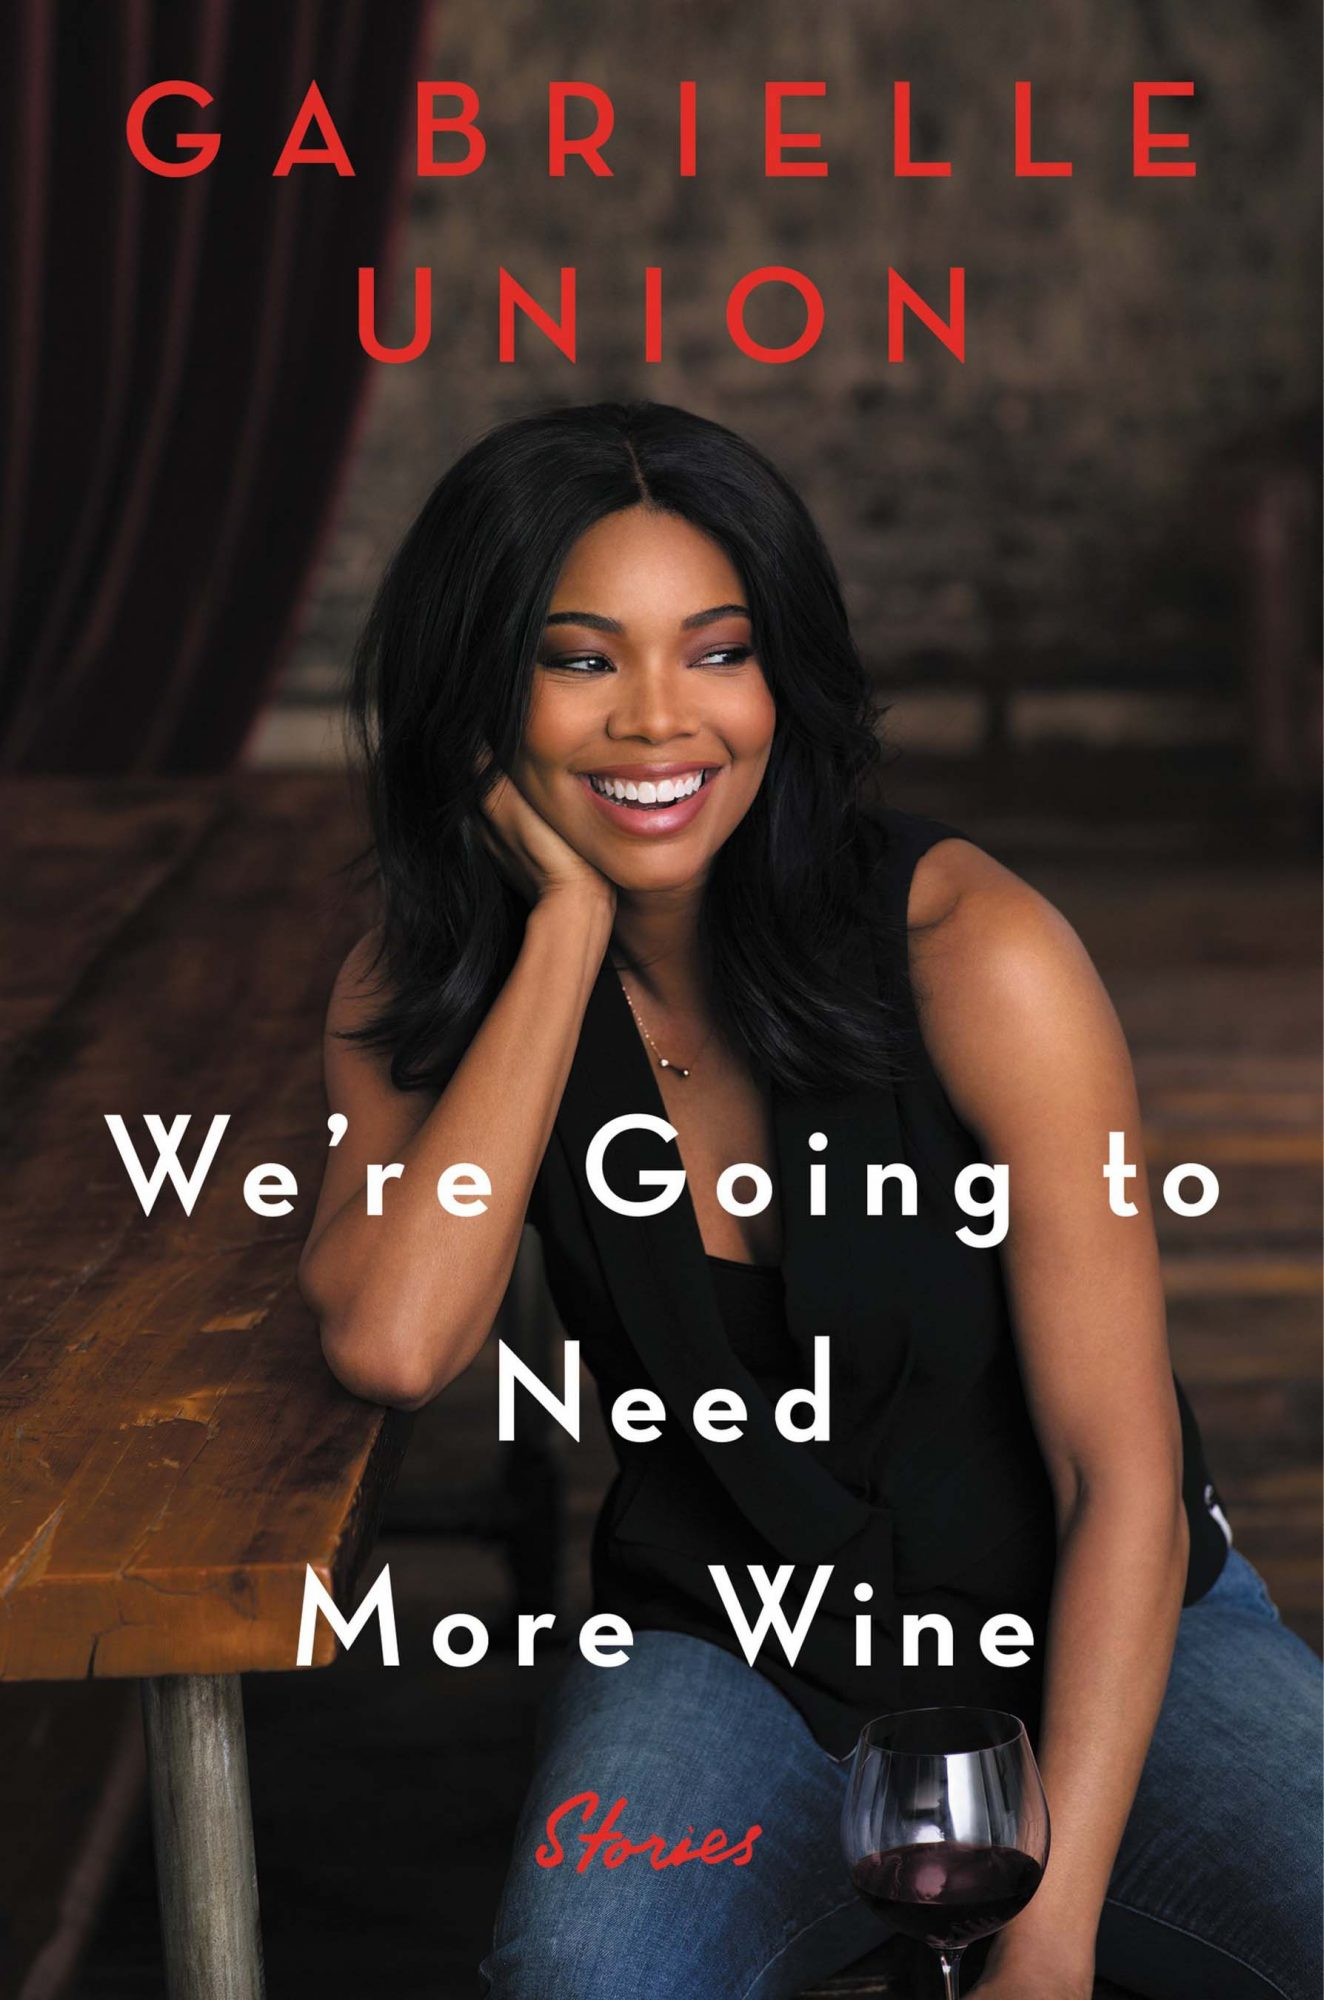 gabrielle-union-were-going-to-need-more-wine